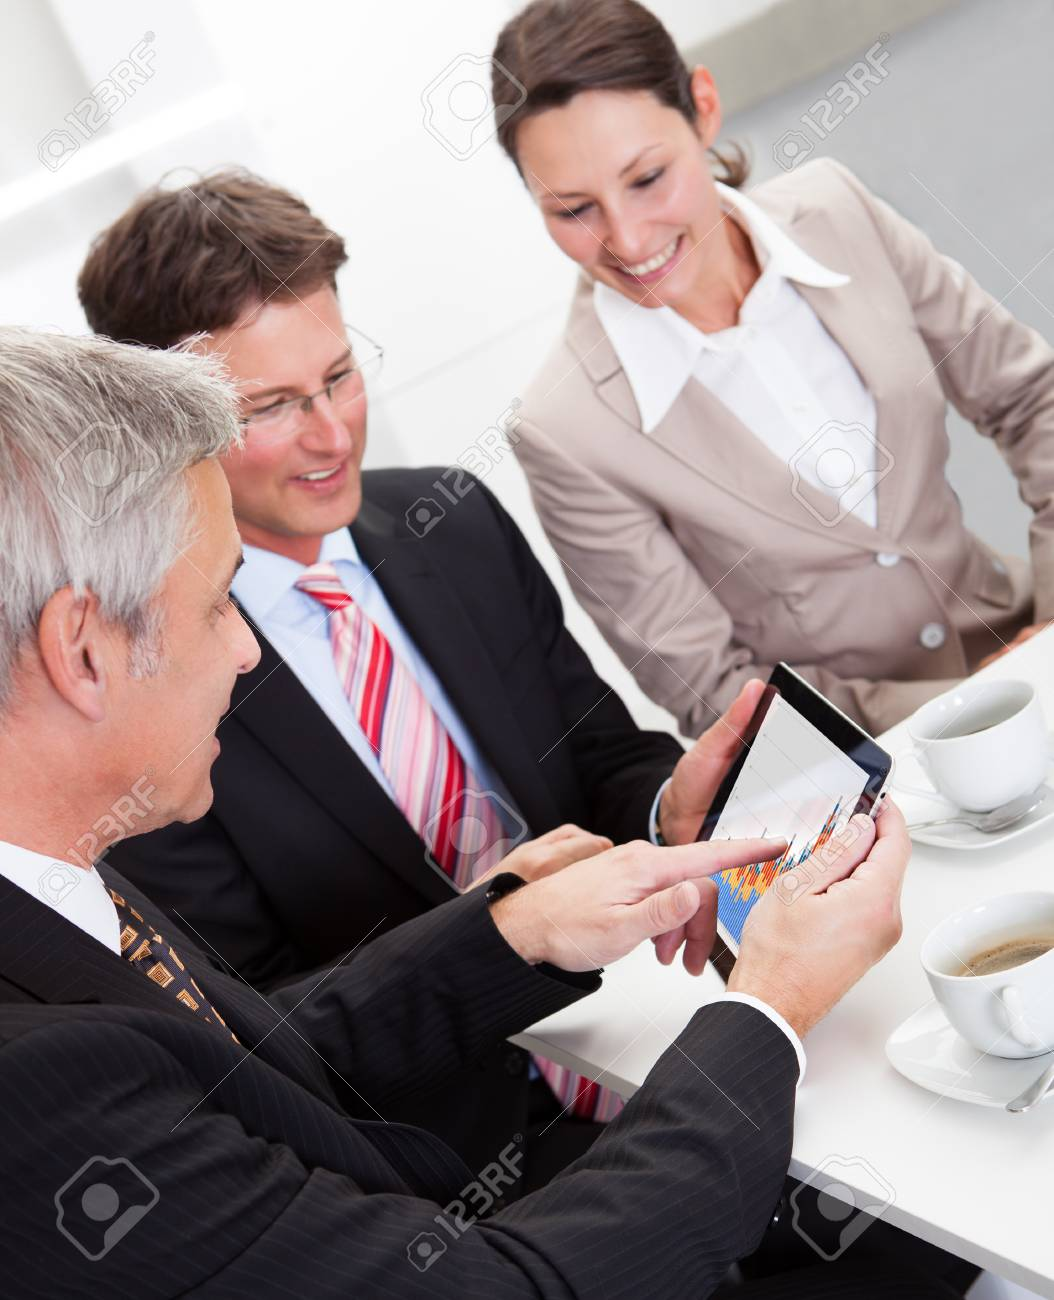 Business colleagues enjoying a coffee break smiling at something on the screen of a tablet held by one of the men Stock Photo - 17260917